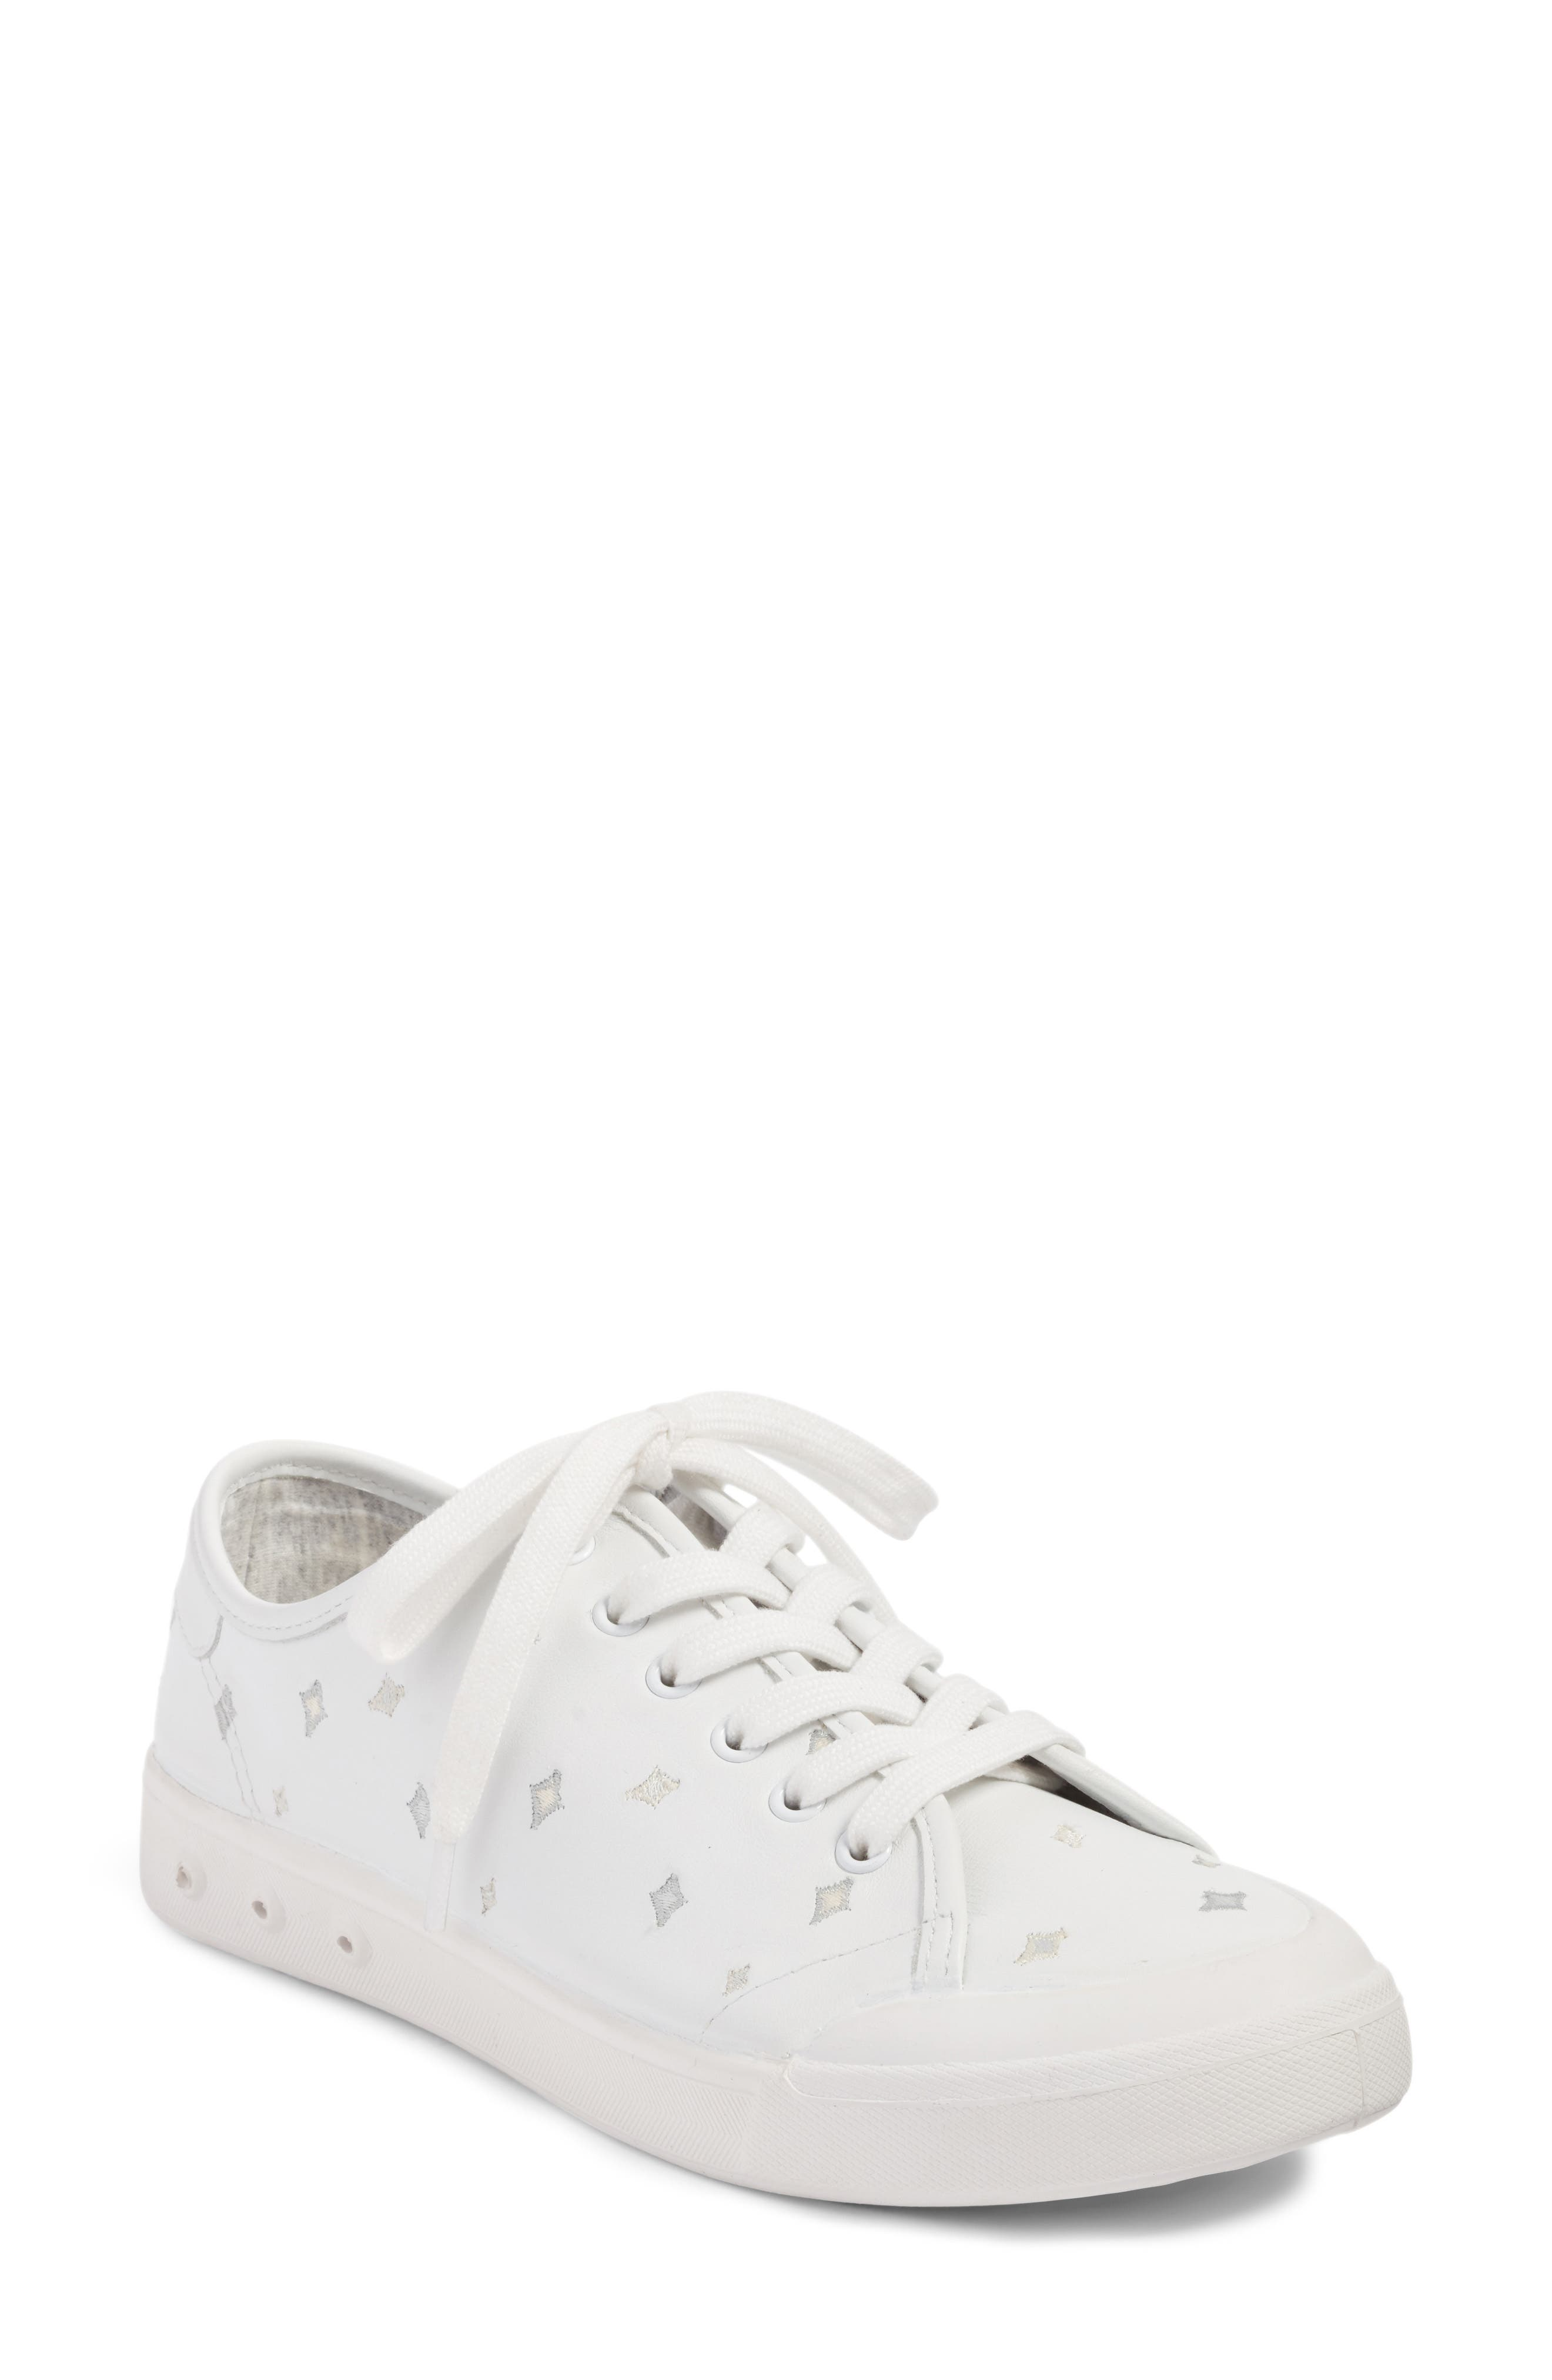 Embroidered Standard Issue Sneaker,                         Main,                         color, 129